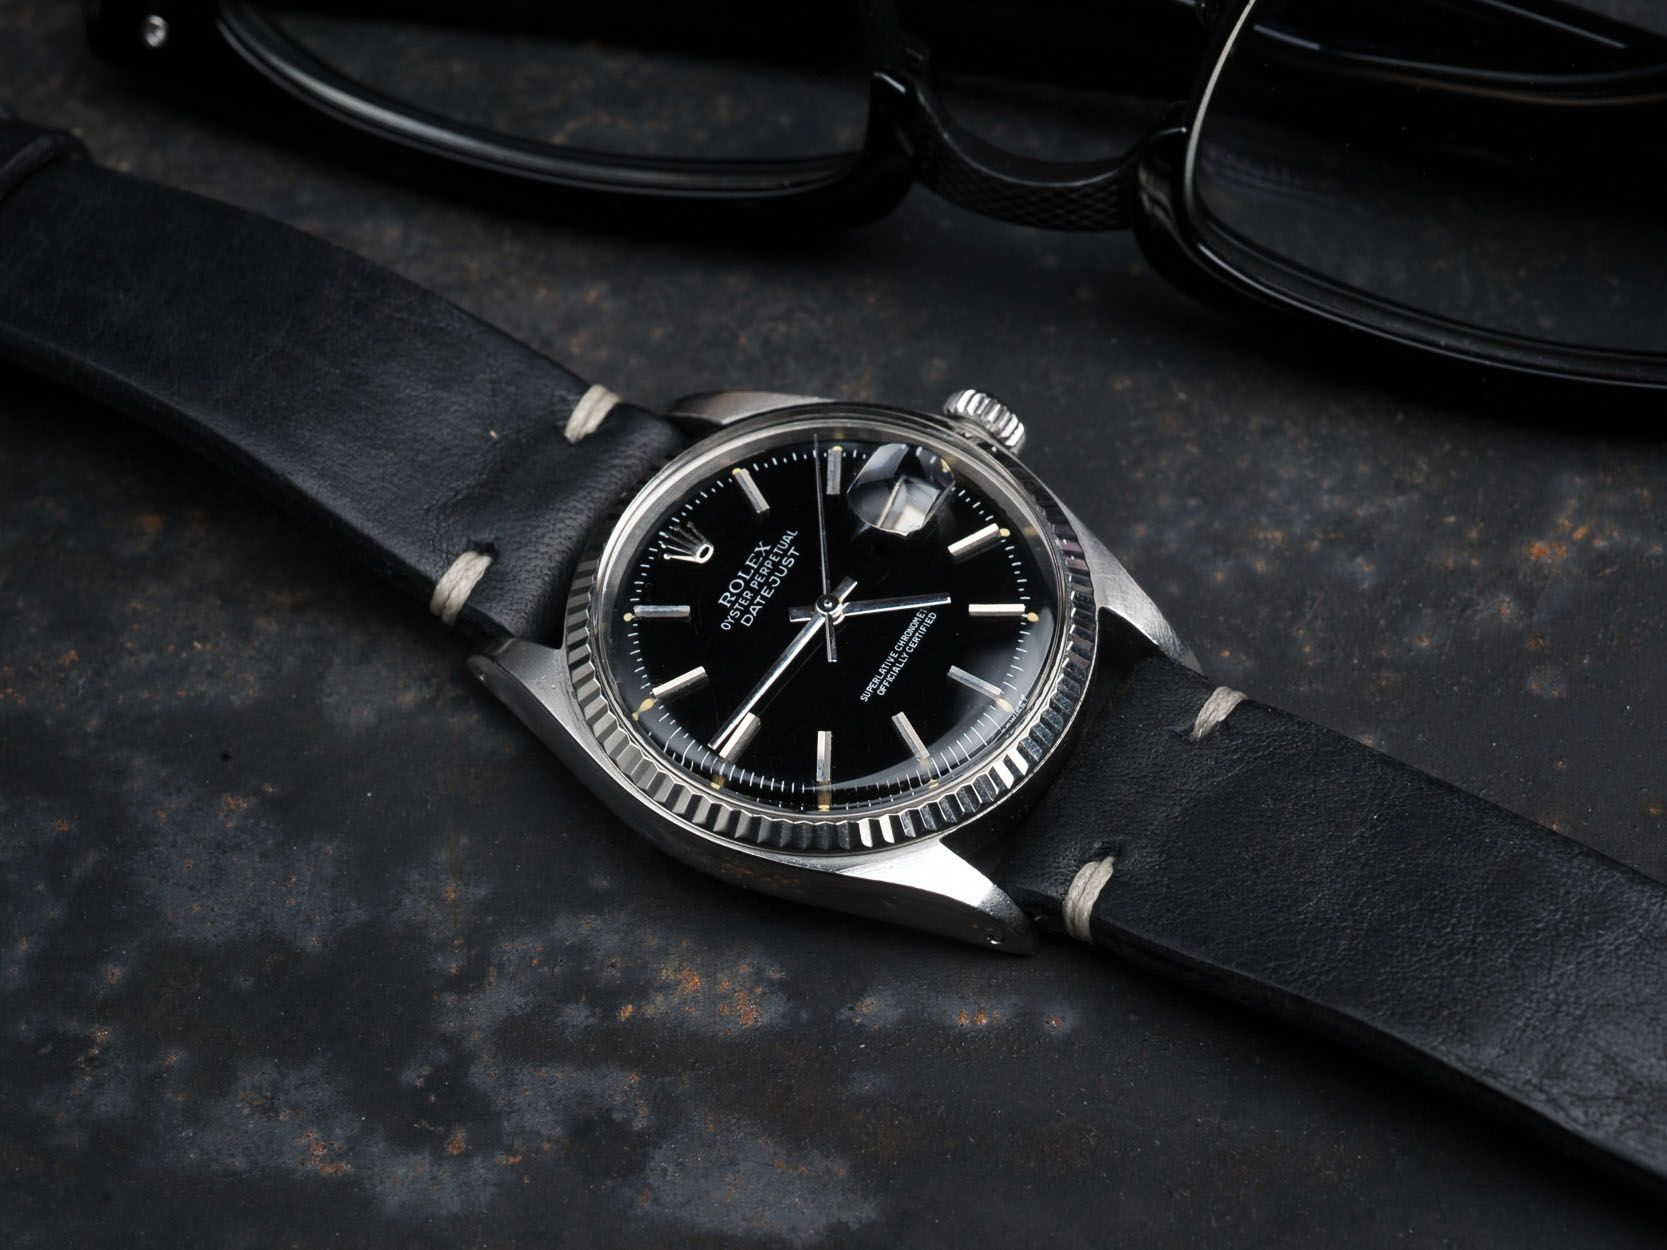 B S Black Vintage Hand Made Leather Strap 20 Mm Bulang Sons Rolex Datejust Black Leather Watch Strap Vintage Watches